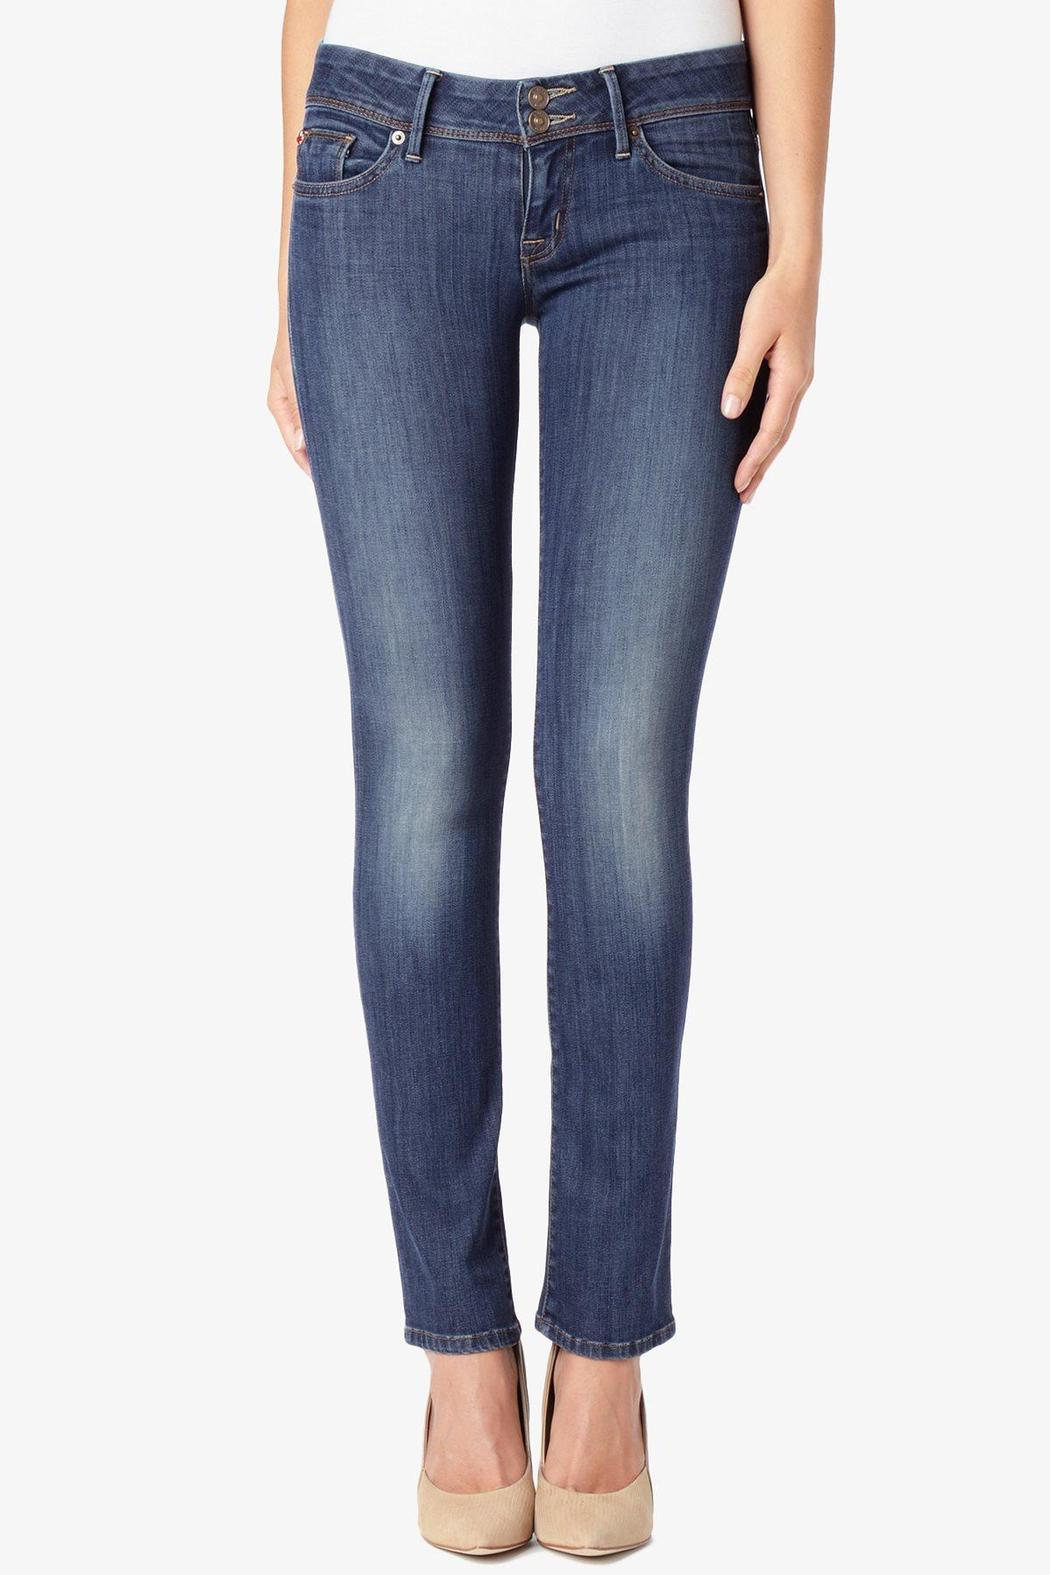 Hudson Jeans Ginny Straight Loveless Jeans - Side Cropped Image